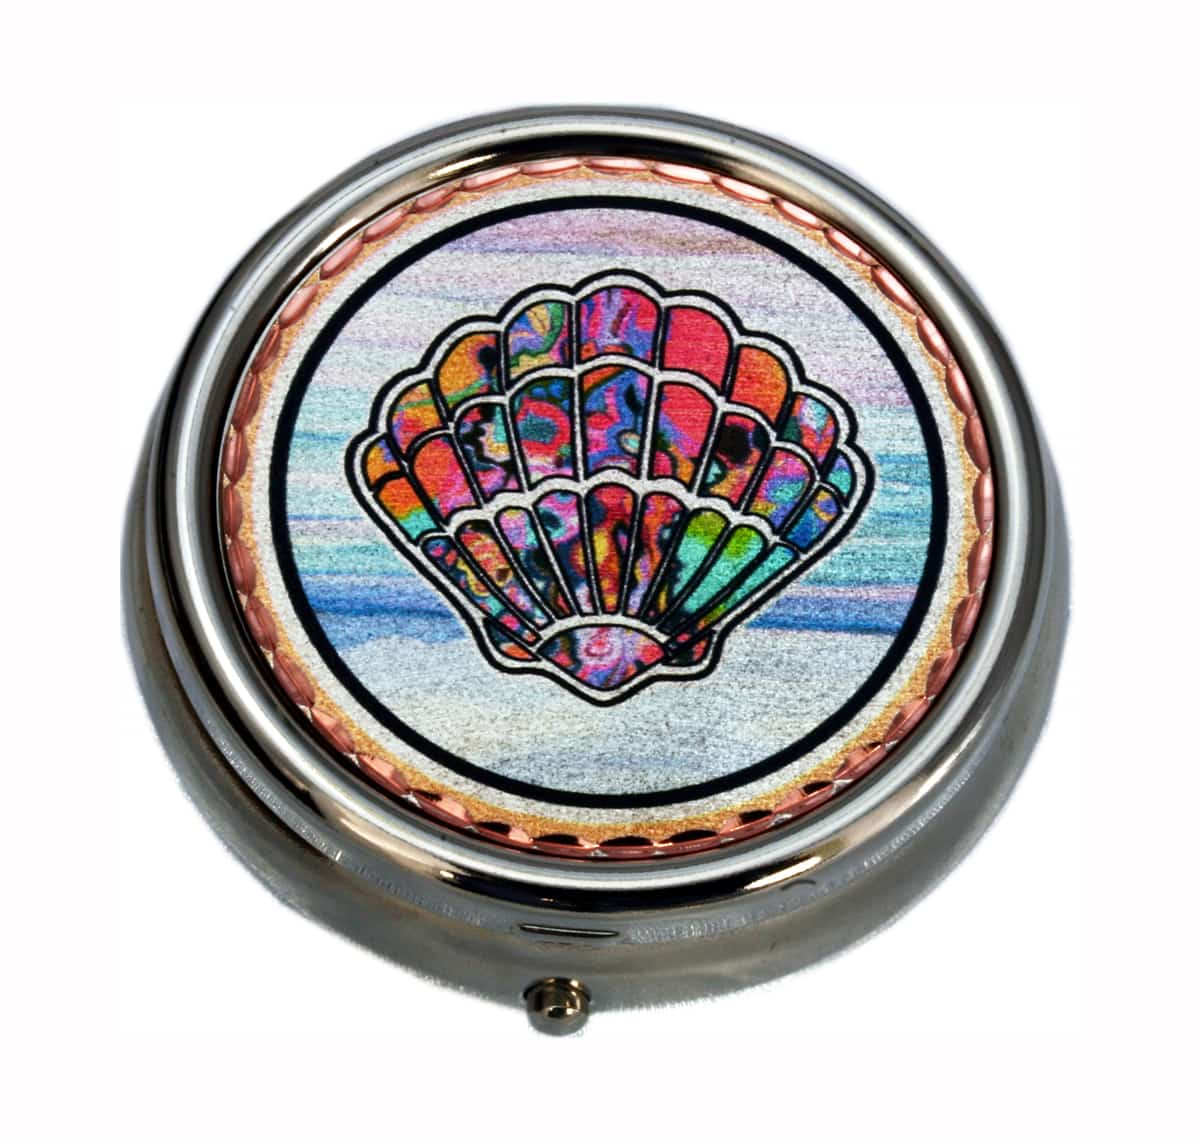 Nautical Gifts, Pill Boxes in Colorful Seashell Design